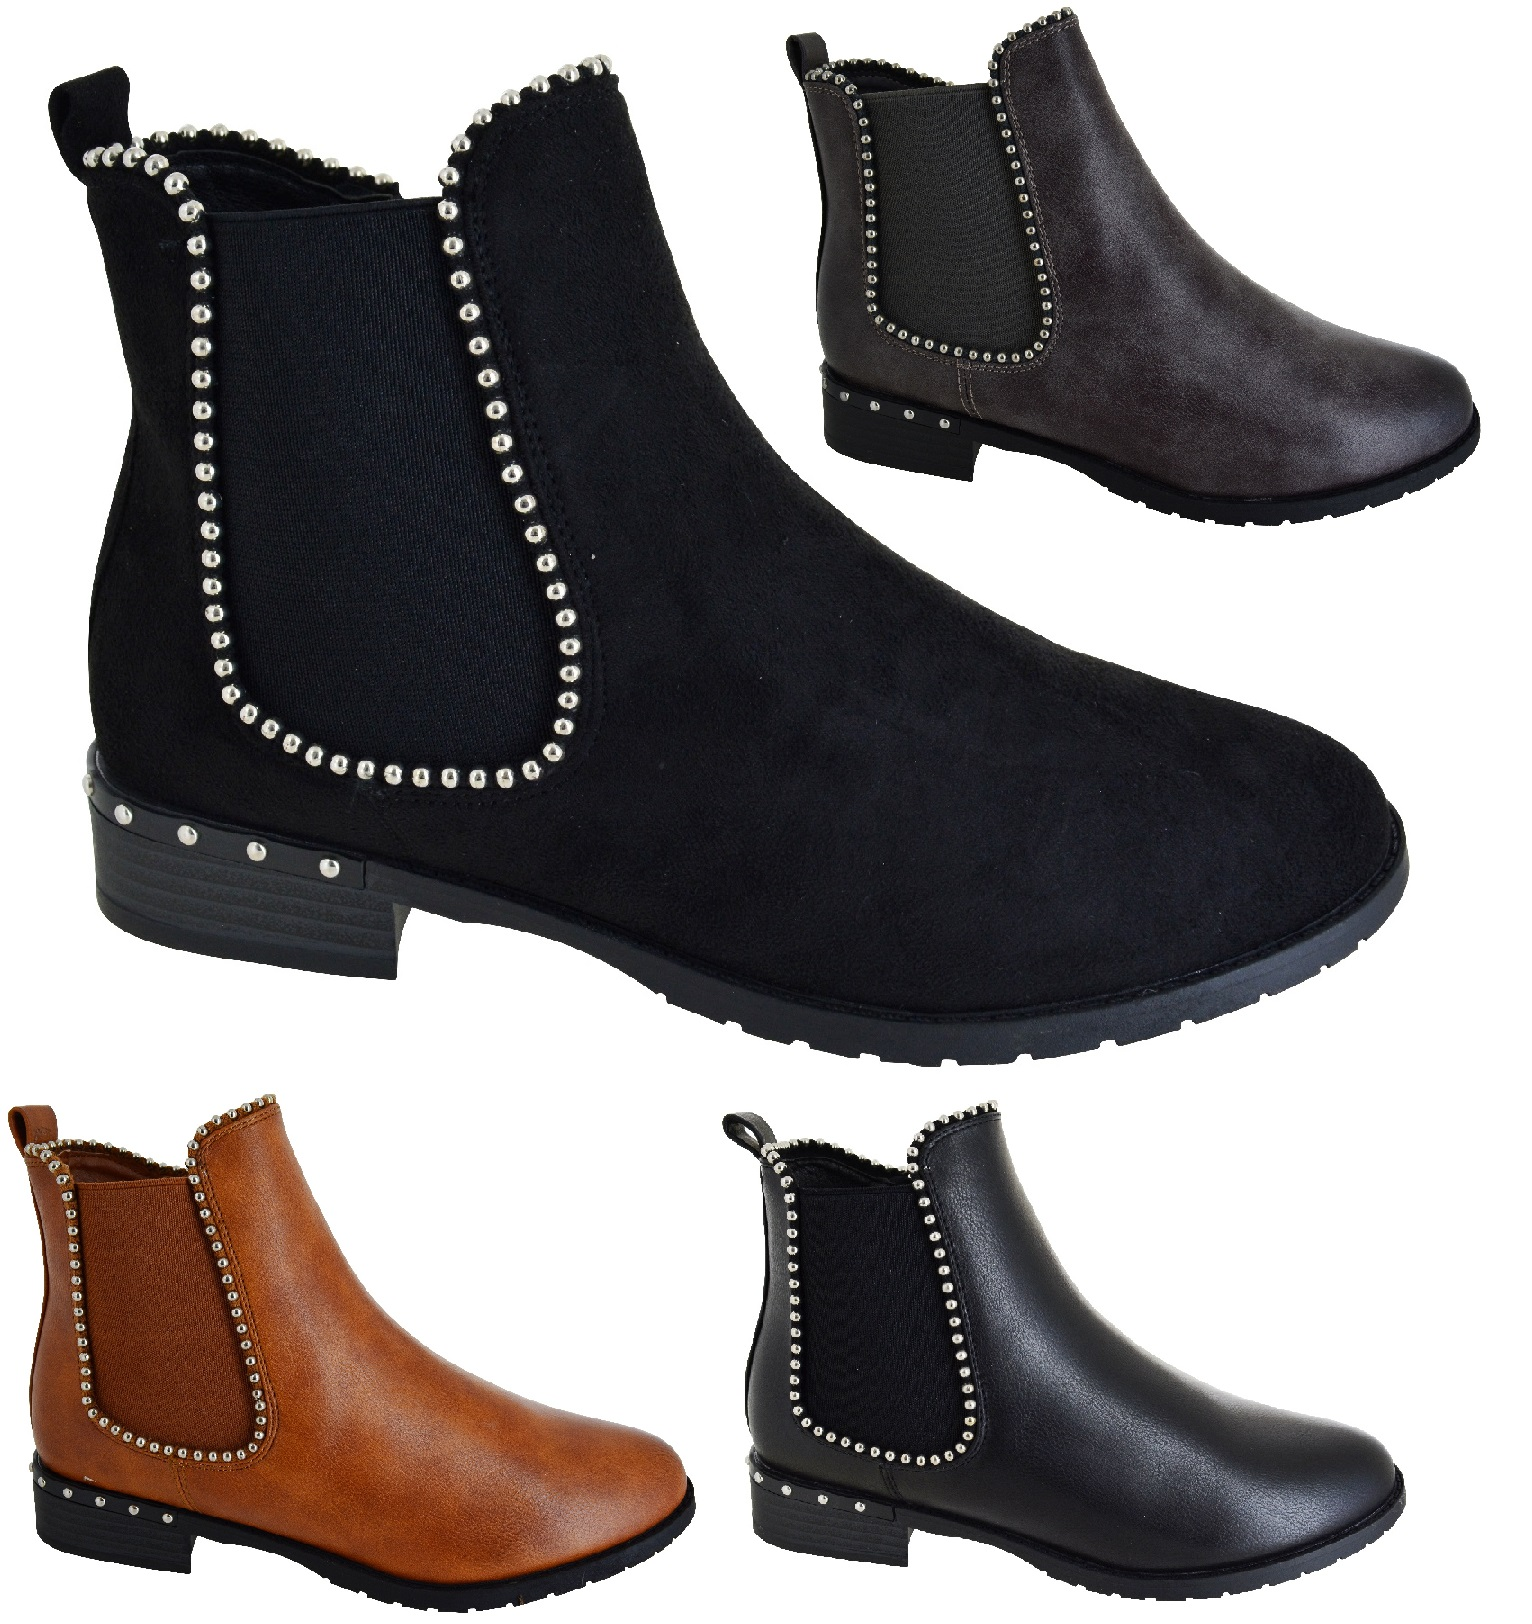 WOMENS STUDDED NIGHT OUT WORK CASUAL COMFY CHELSEA DEALER BOOTS ANKLE SHOES SZ